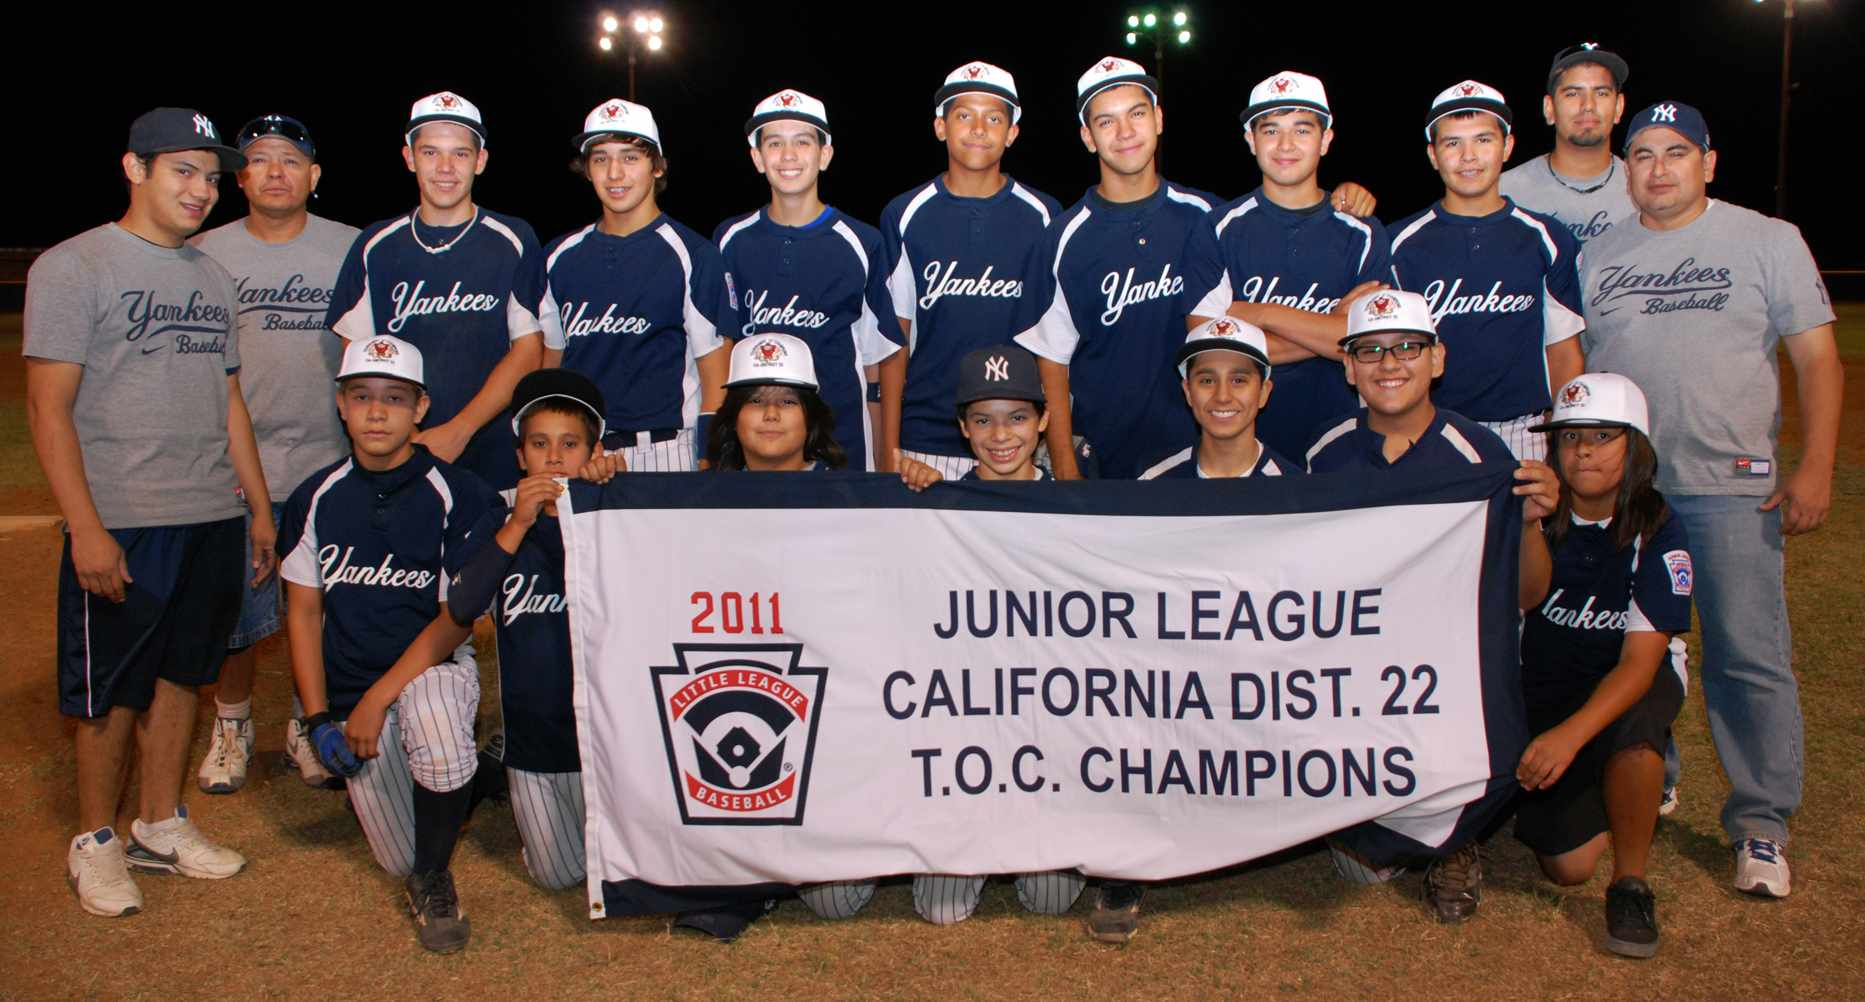 The Yankees-Junior League Champions